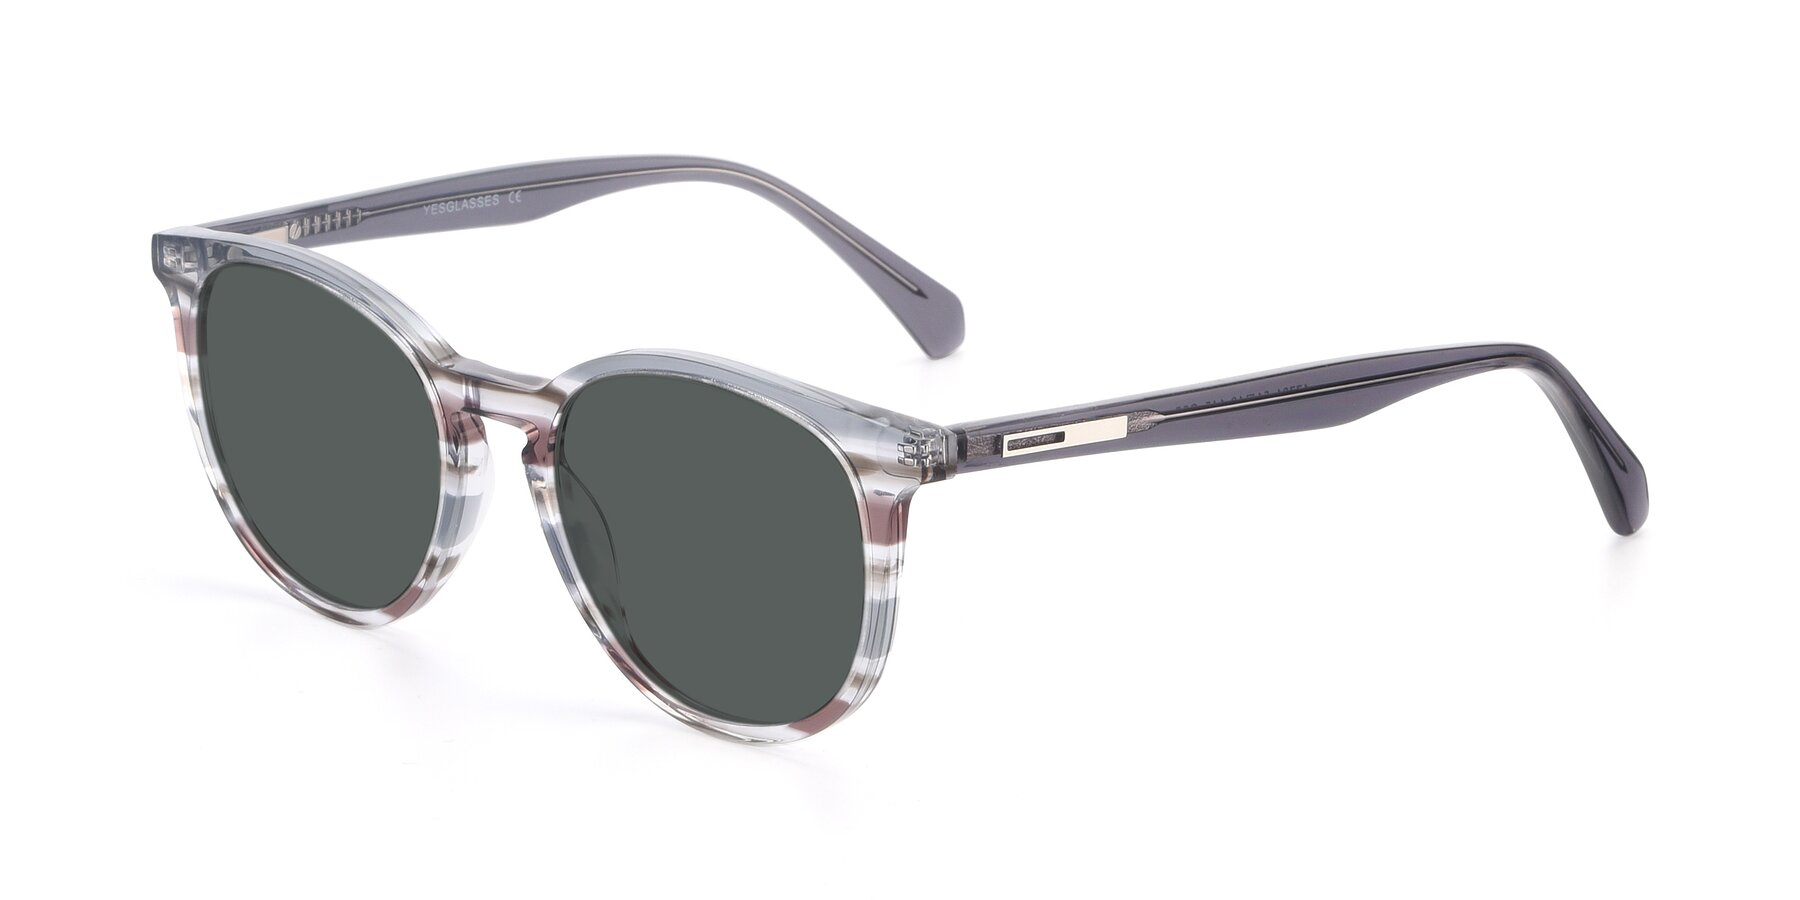 Angle of 17721 in Stripe Grey with Gray Polarized Lenses